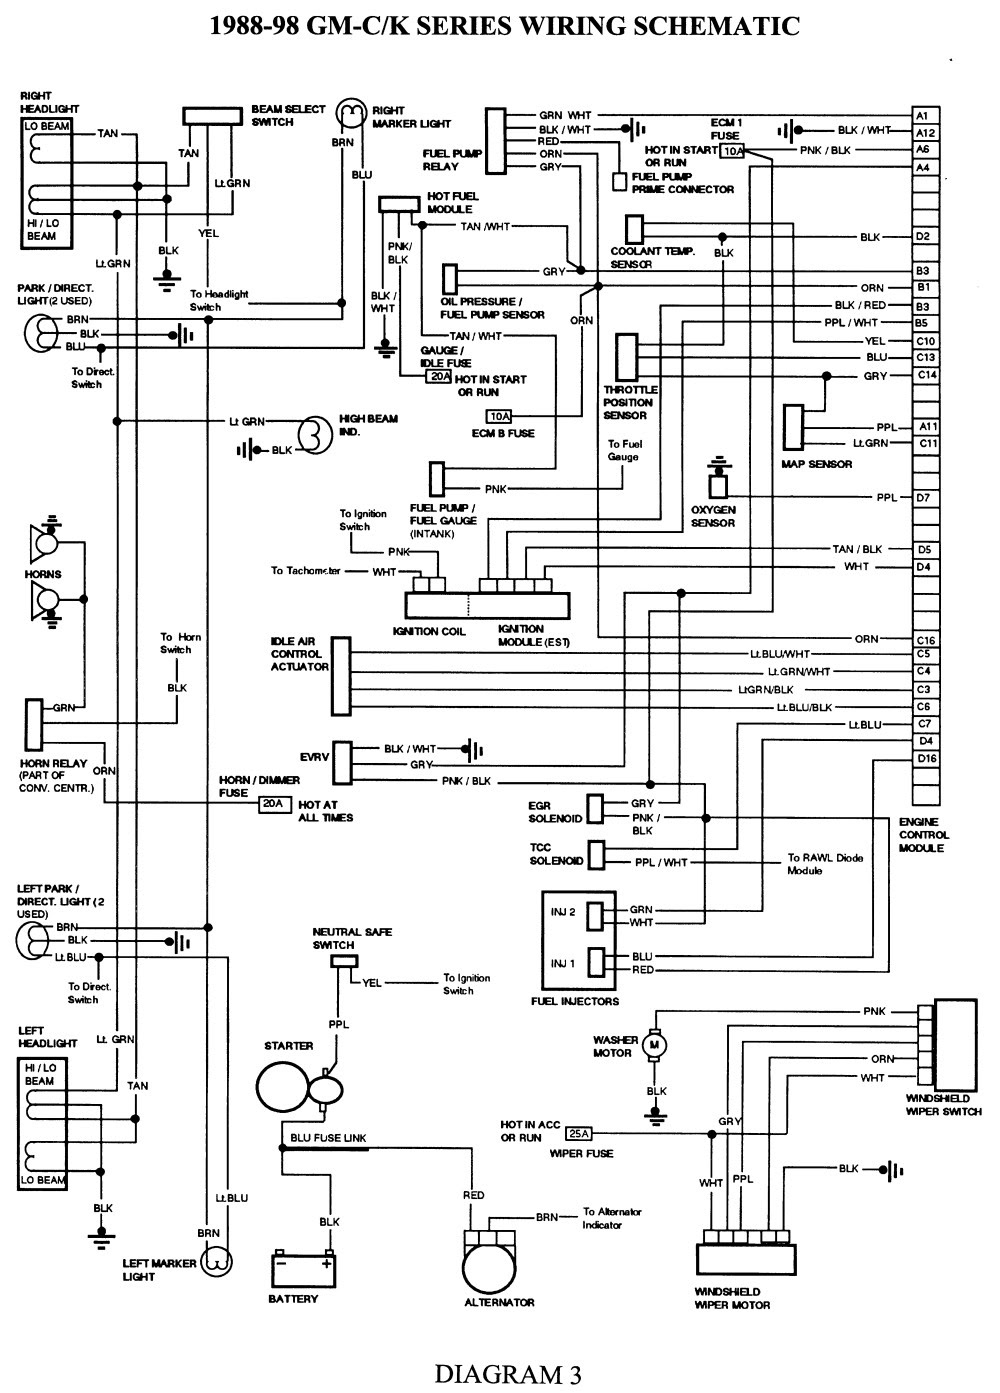 Diagram Viper 5706 Wiring Diagram 2003 Silverado Full Version Hd Quality 2003 Silverado Diagramdianer Banficesare It